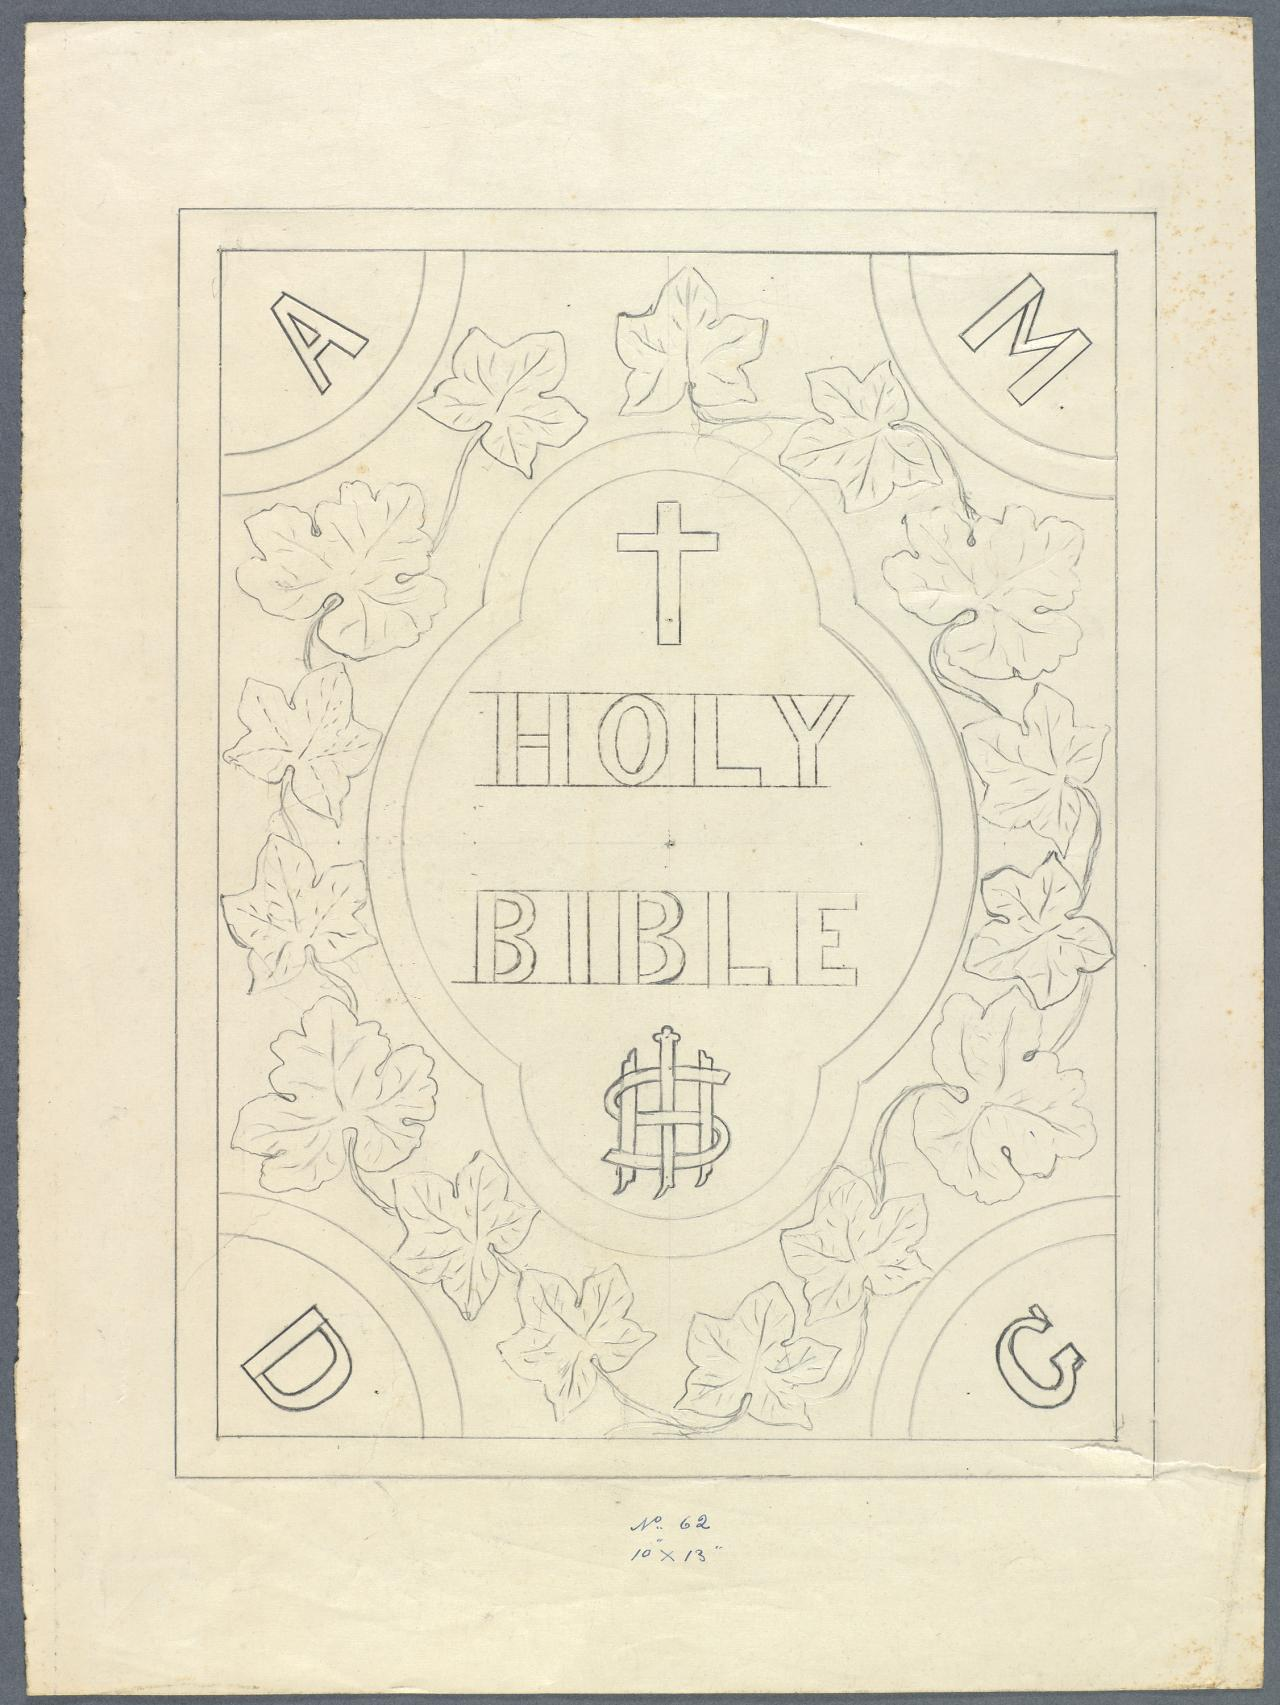 Template for a Bible cover